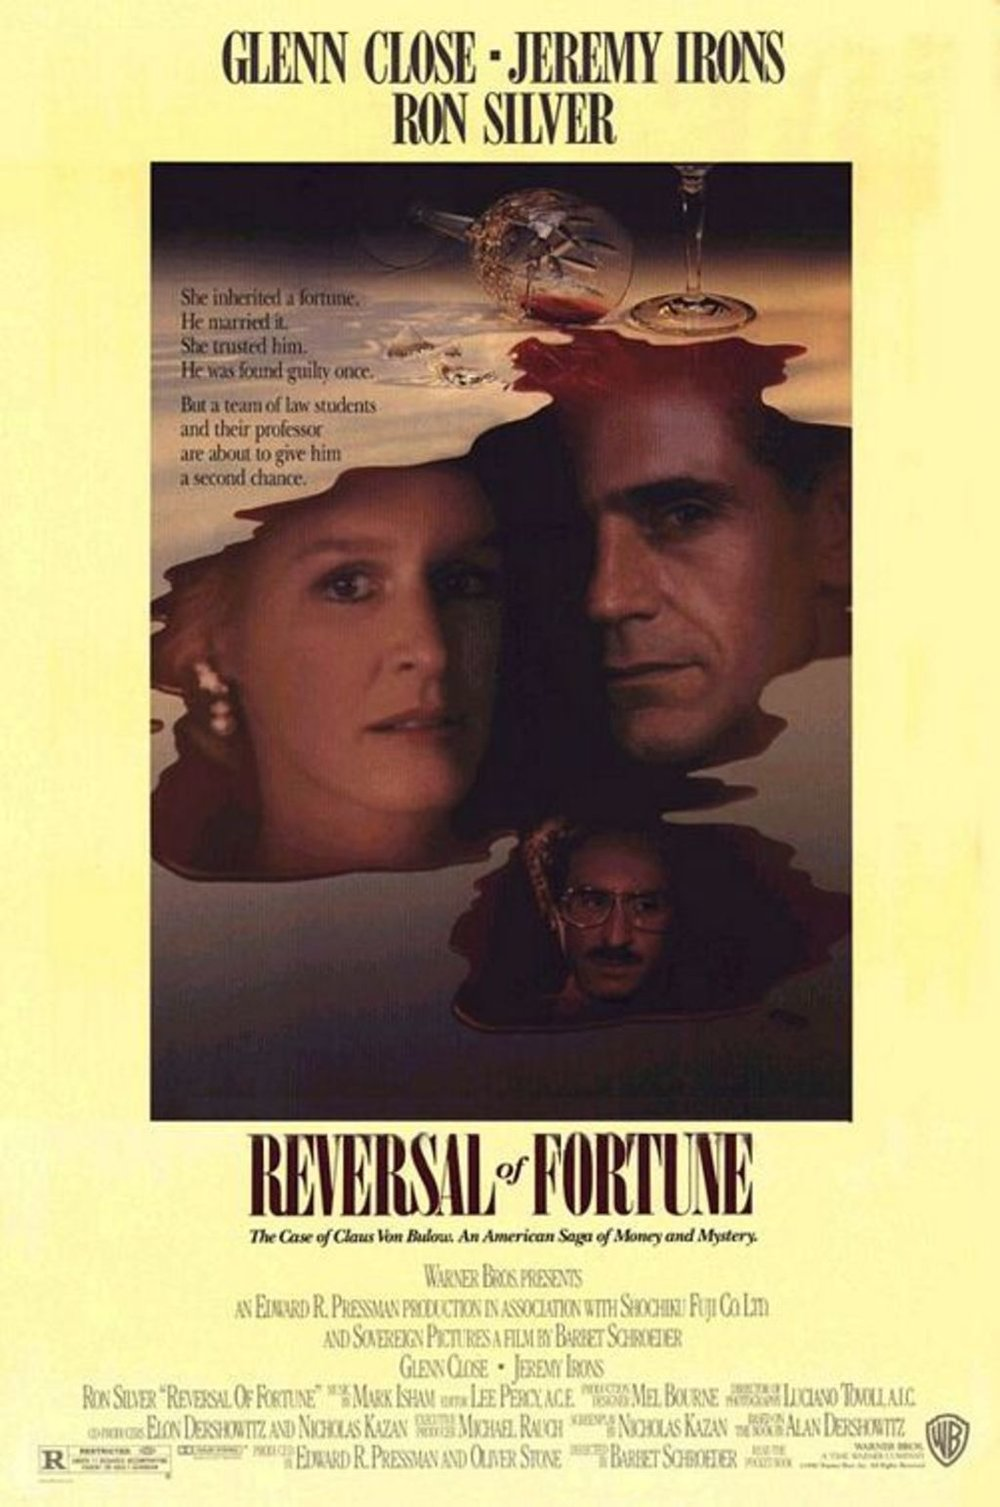 Reversal of Fortune (1990) - Directed by: Barbet SchroederStarring: Jeremy Irons, Glenn Close, Ron SilverRated: RRunning Time: 1 h 51 mTMM Score: 5 stars out of 5STRENGTHS: Writing, Characters, Acting, Story and Story StructureWEAKNESSES: -